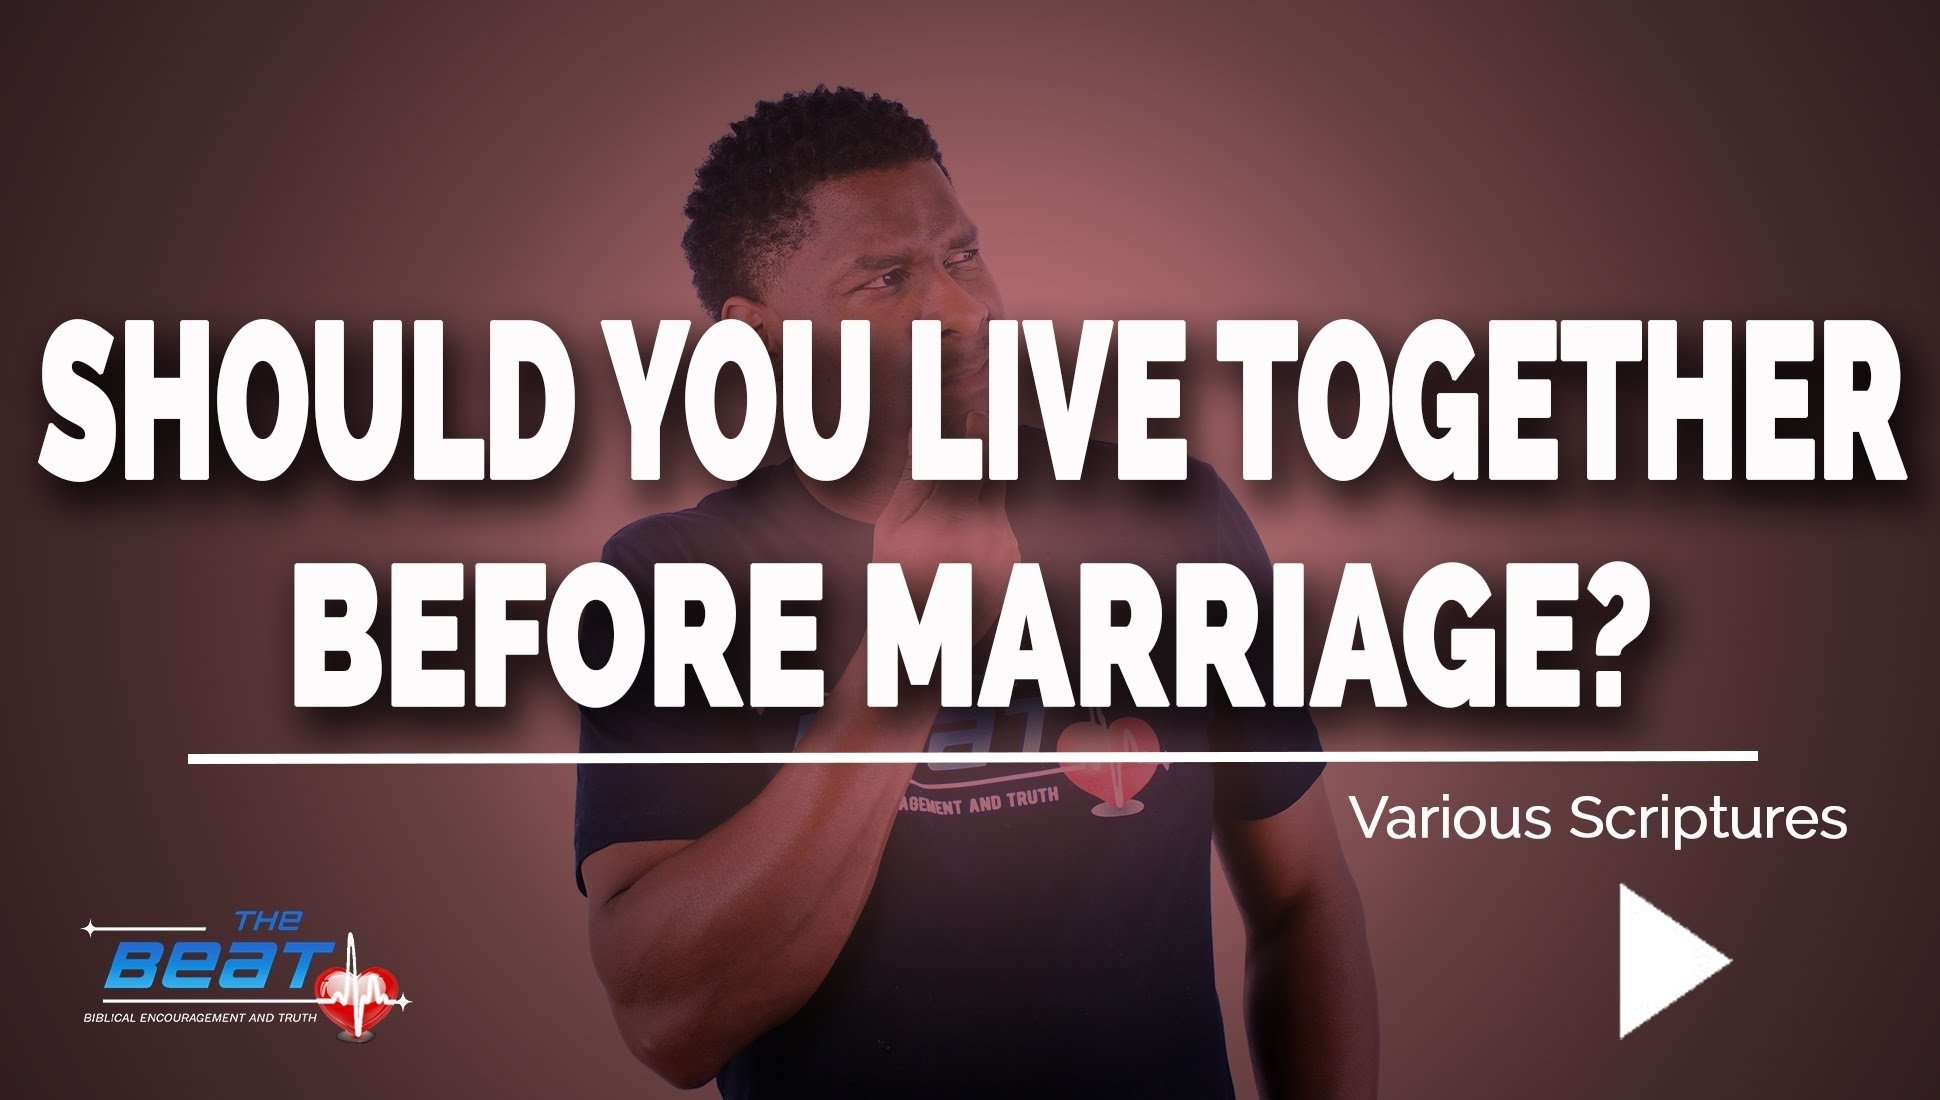 10 Elegant Is Living Together Before Marriage A Good Idea should couples live together before marriage youtube 1 2021